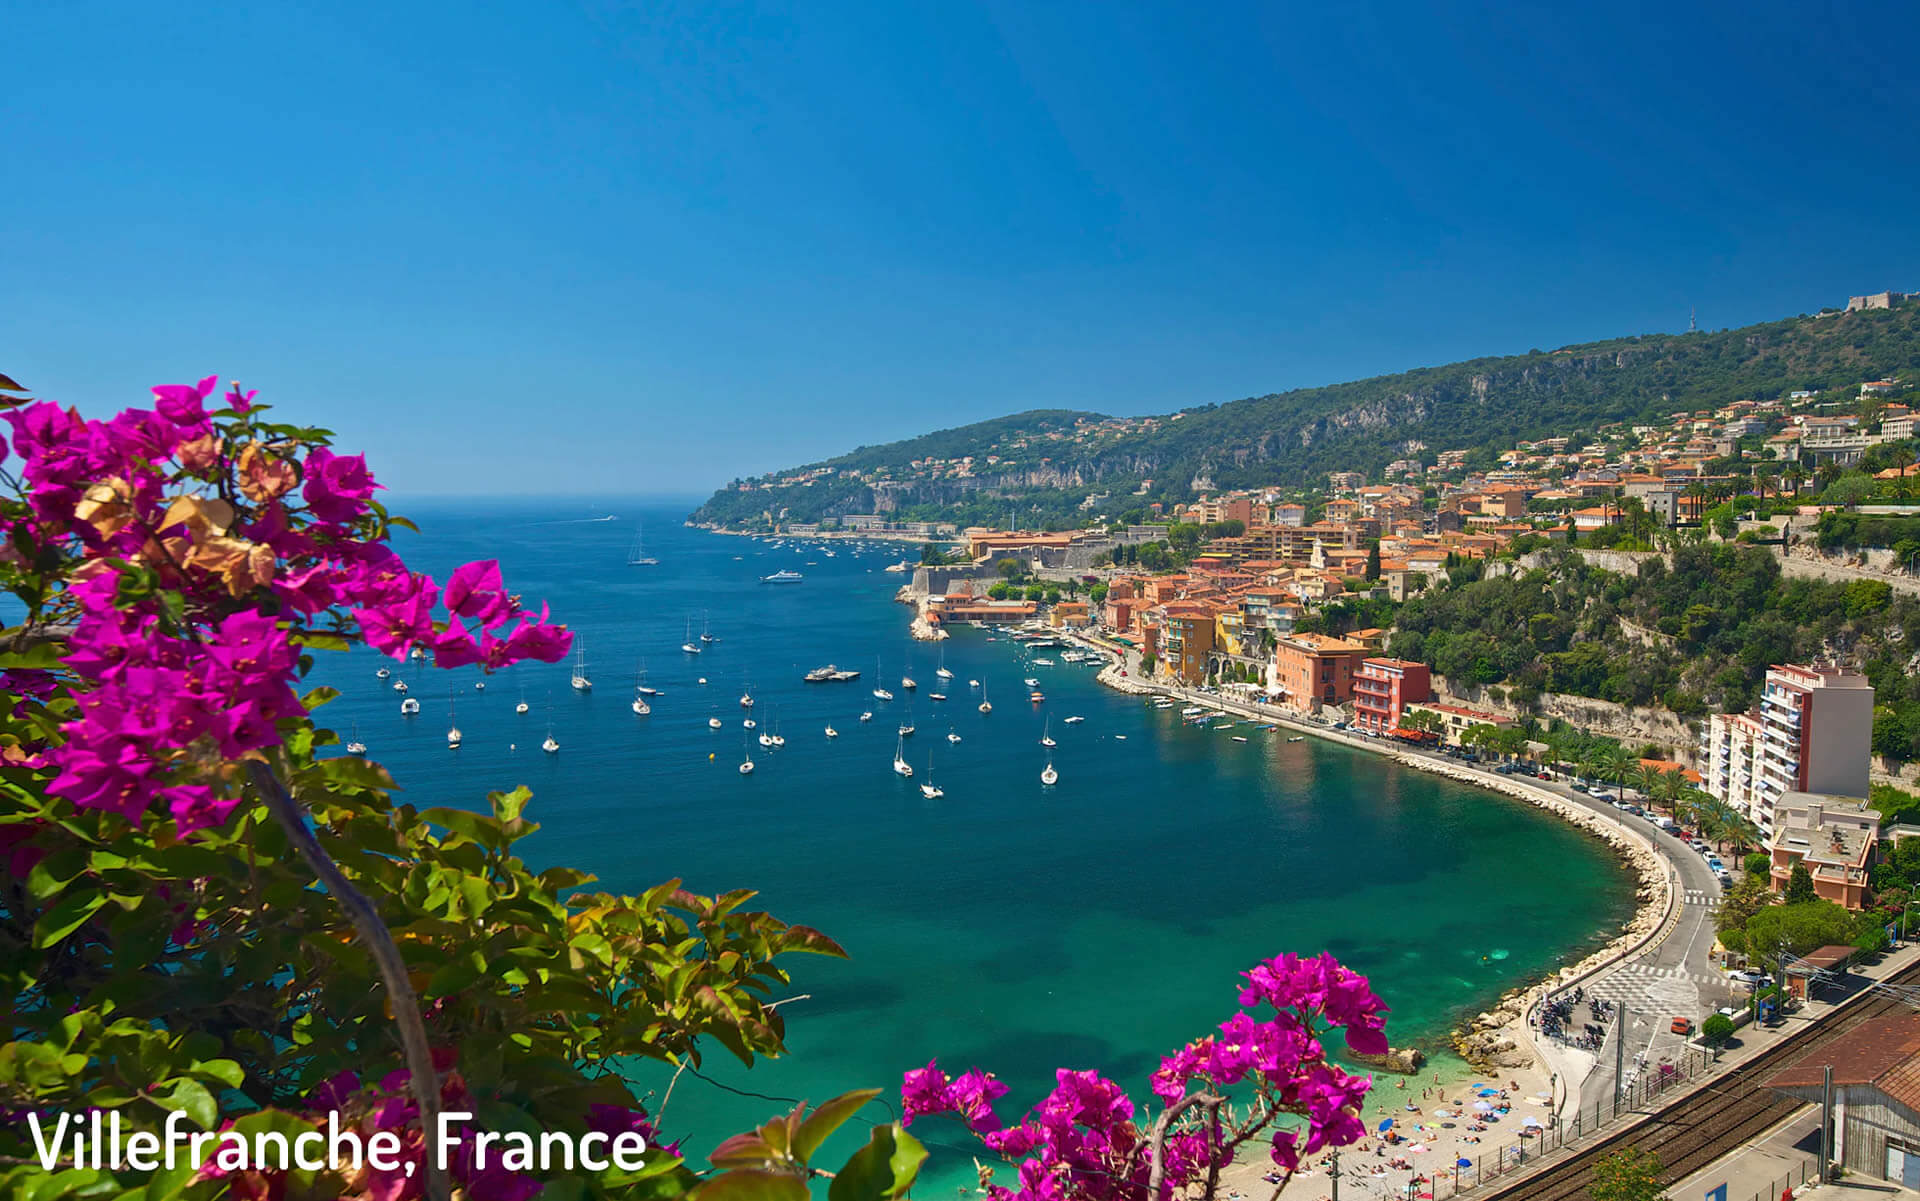 Villefranche France